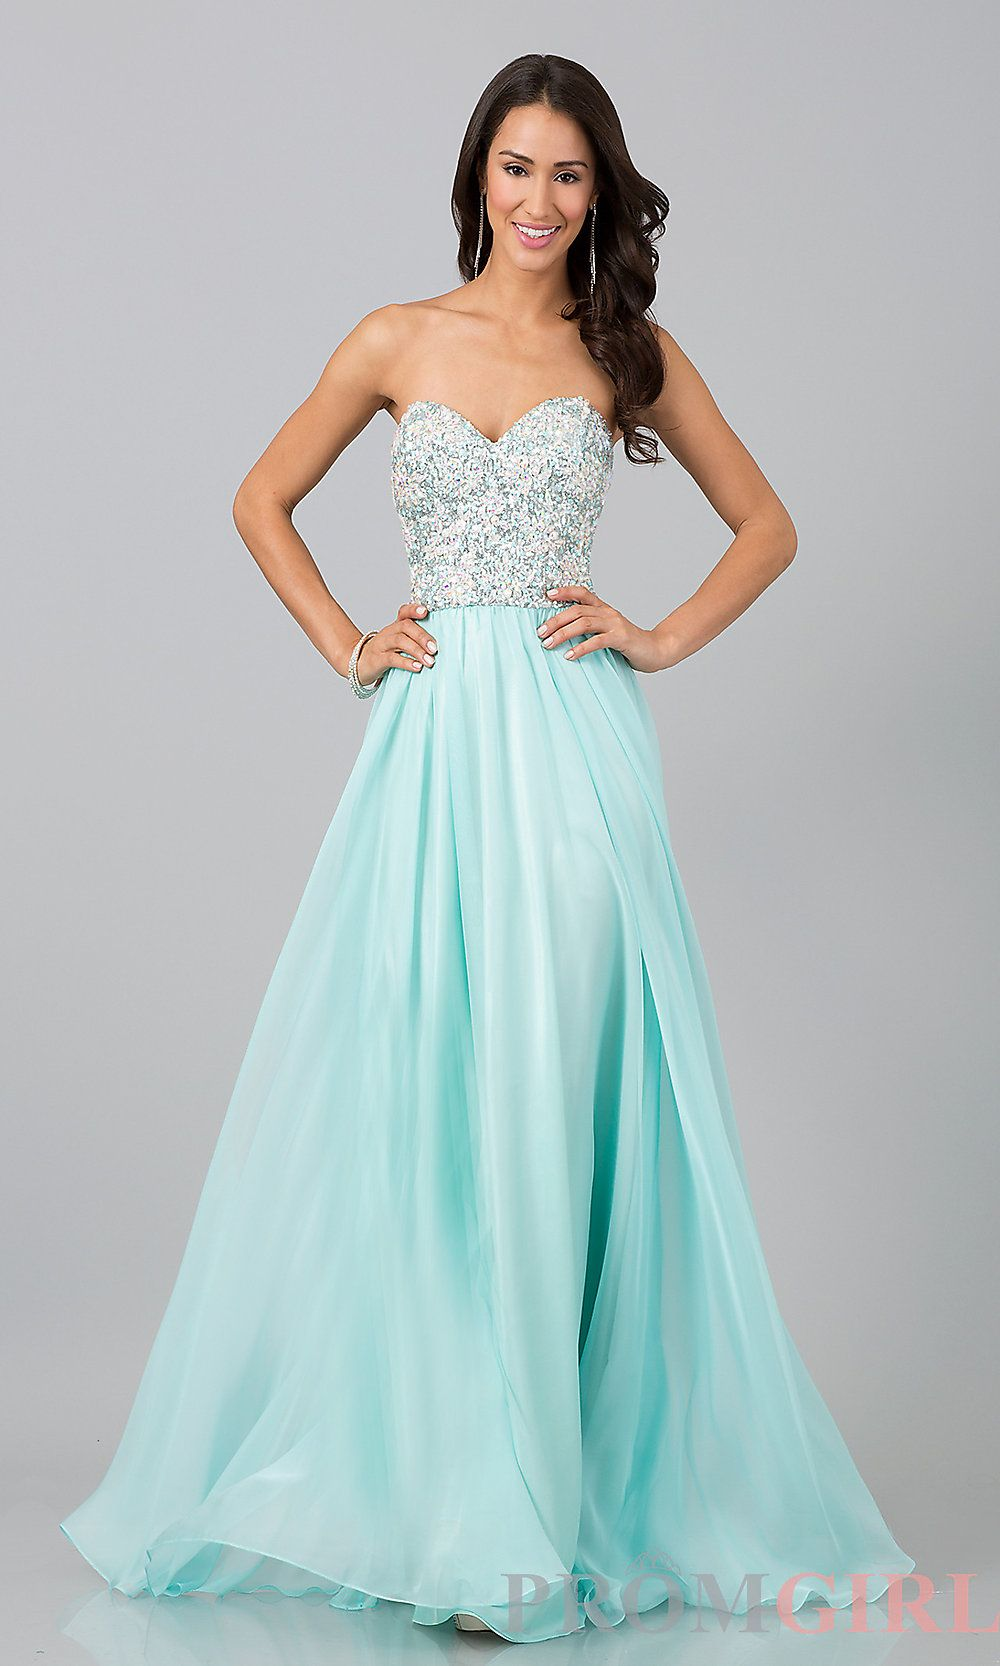 Strapless Long Beaded Prom Dress, Beaded Gown- PromGirl $132 | Sweet ...